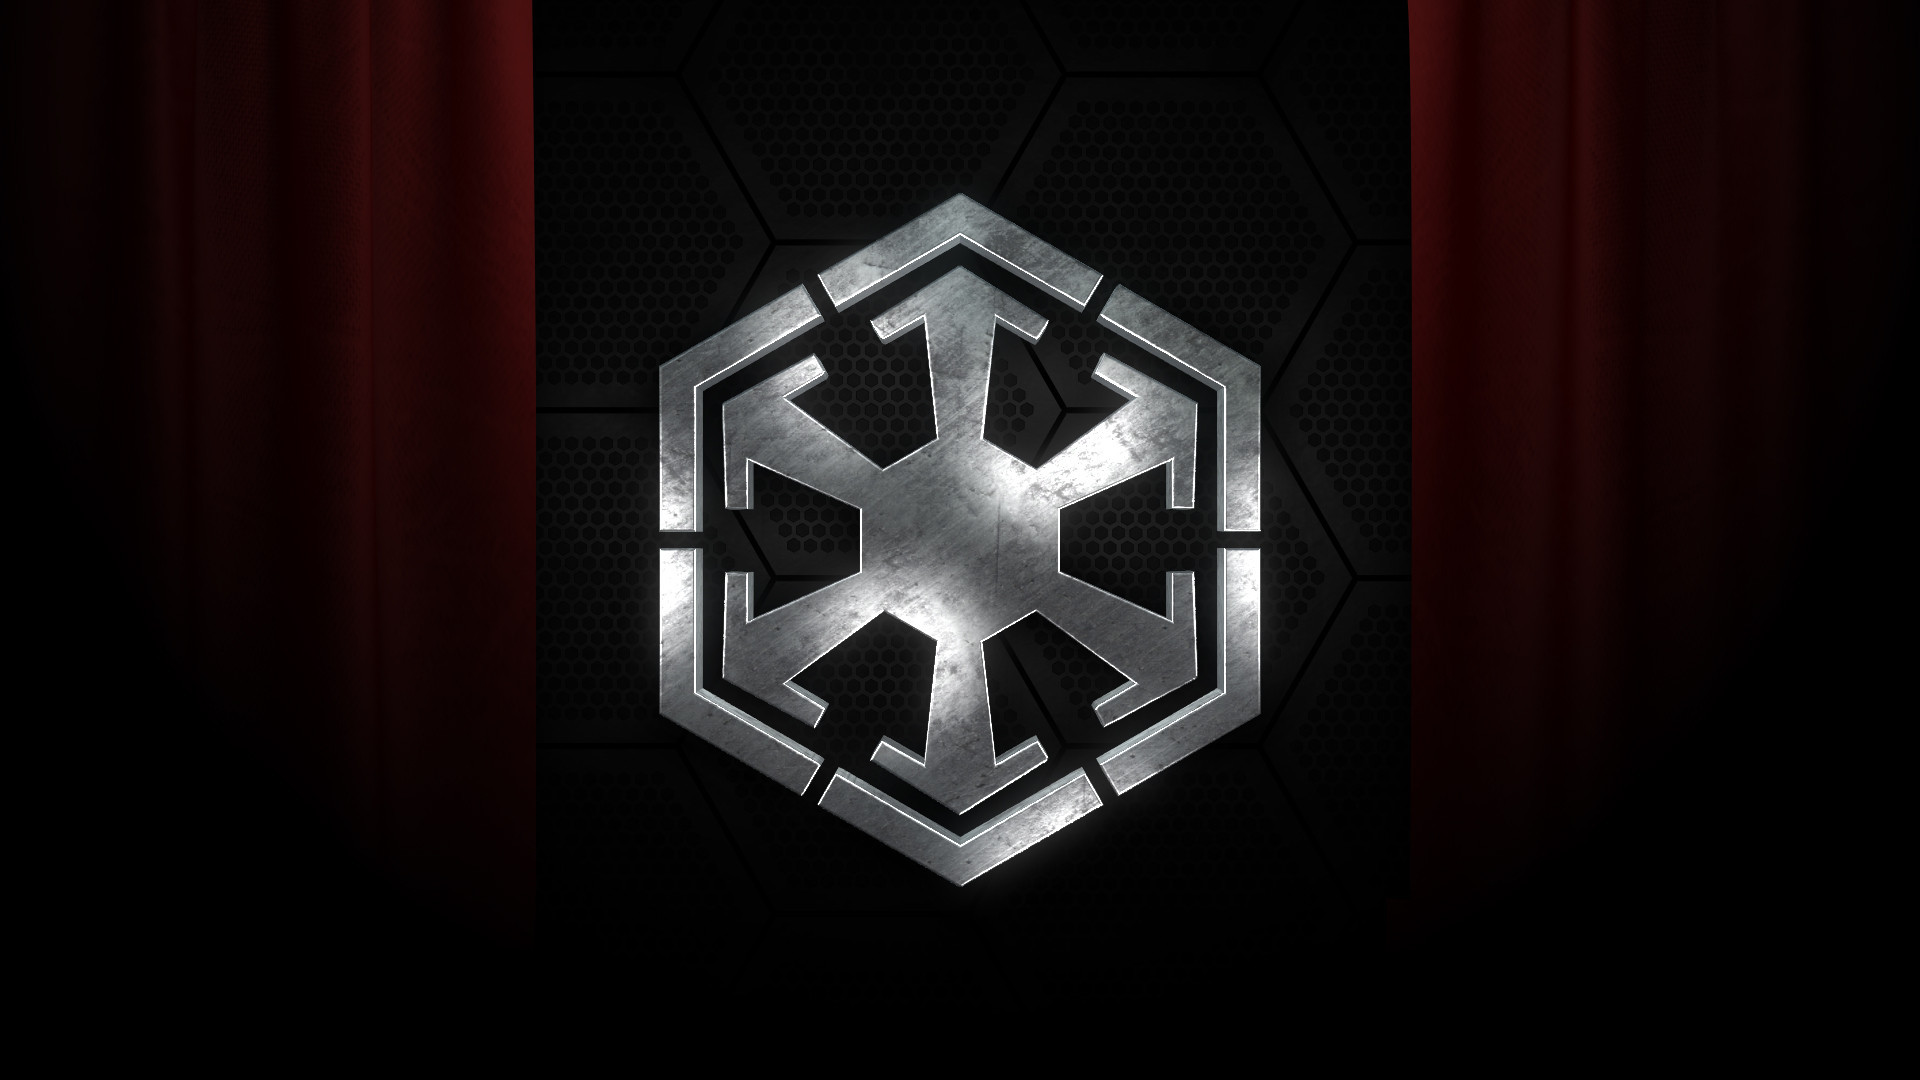 Sith Empire Wallpaper 81 Images